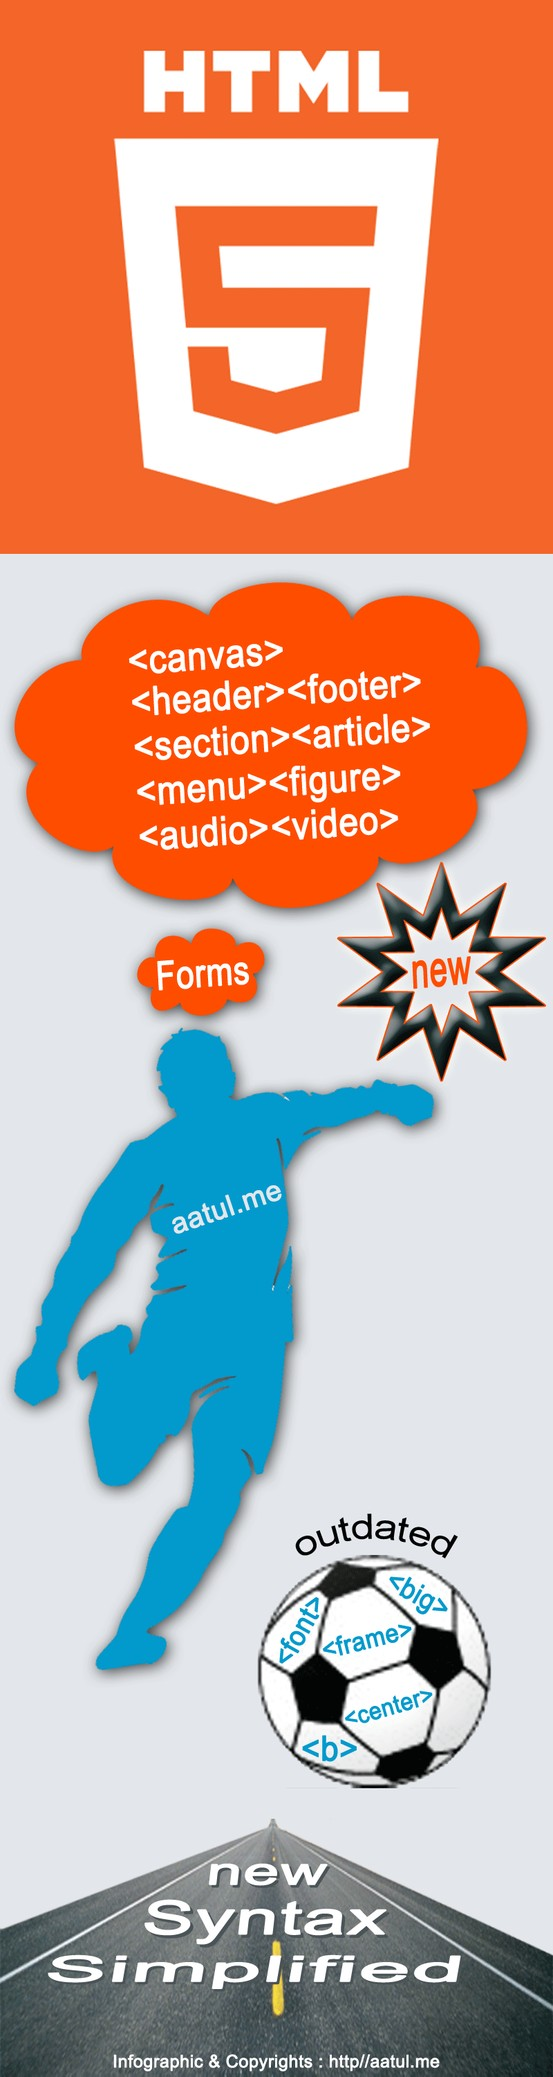 HTML5 Features : Infographic